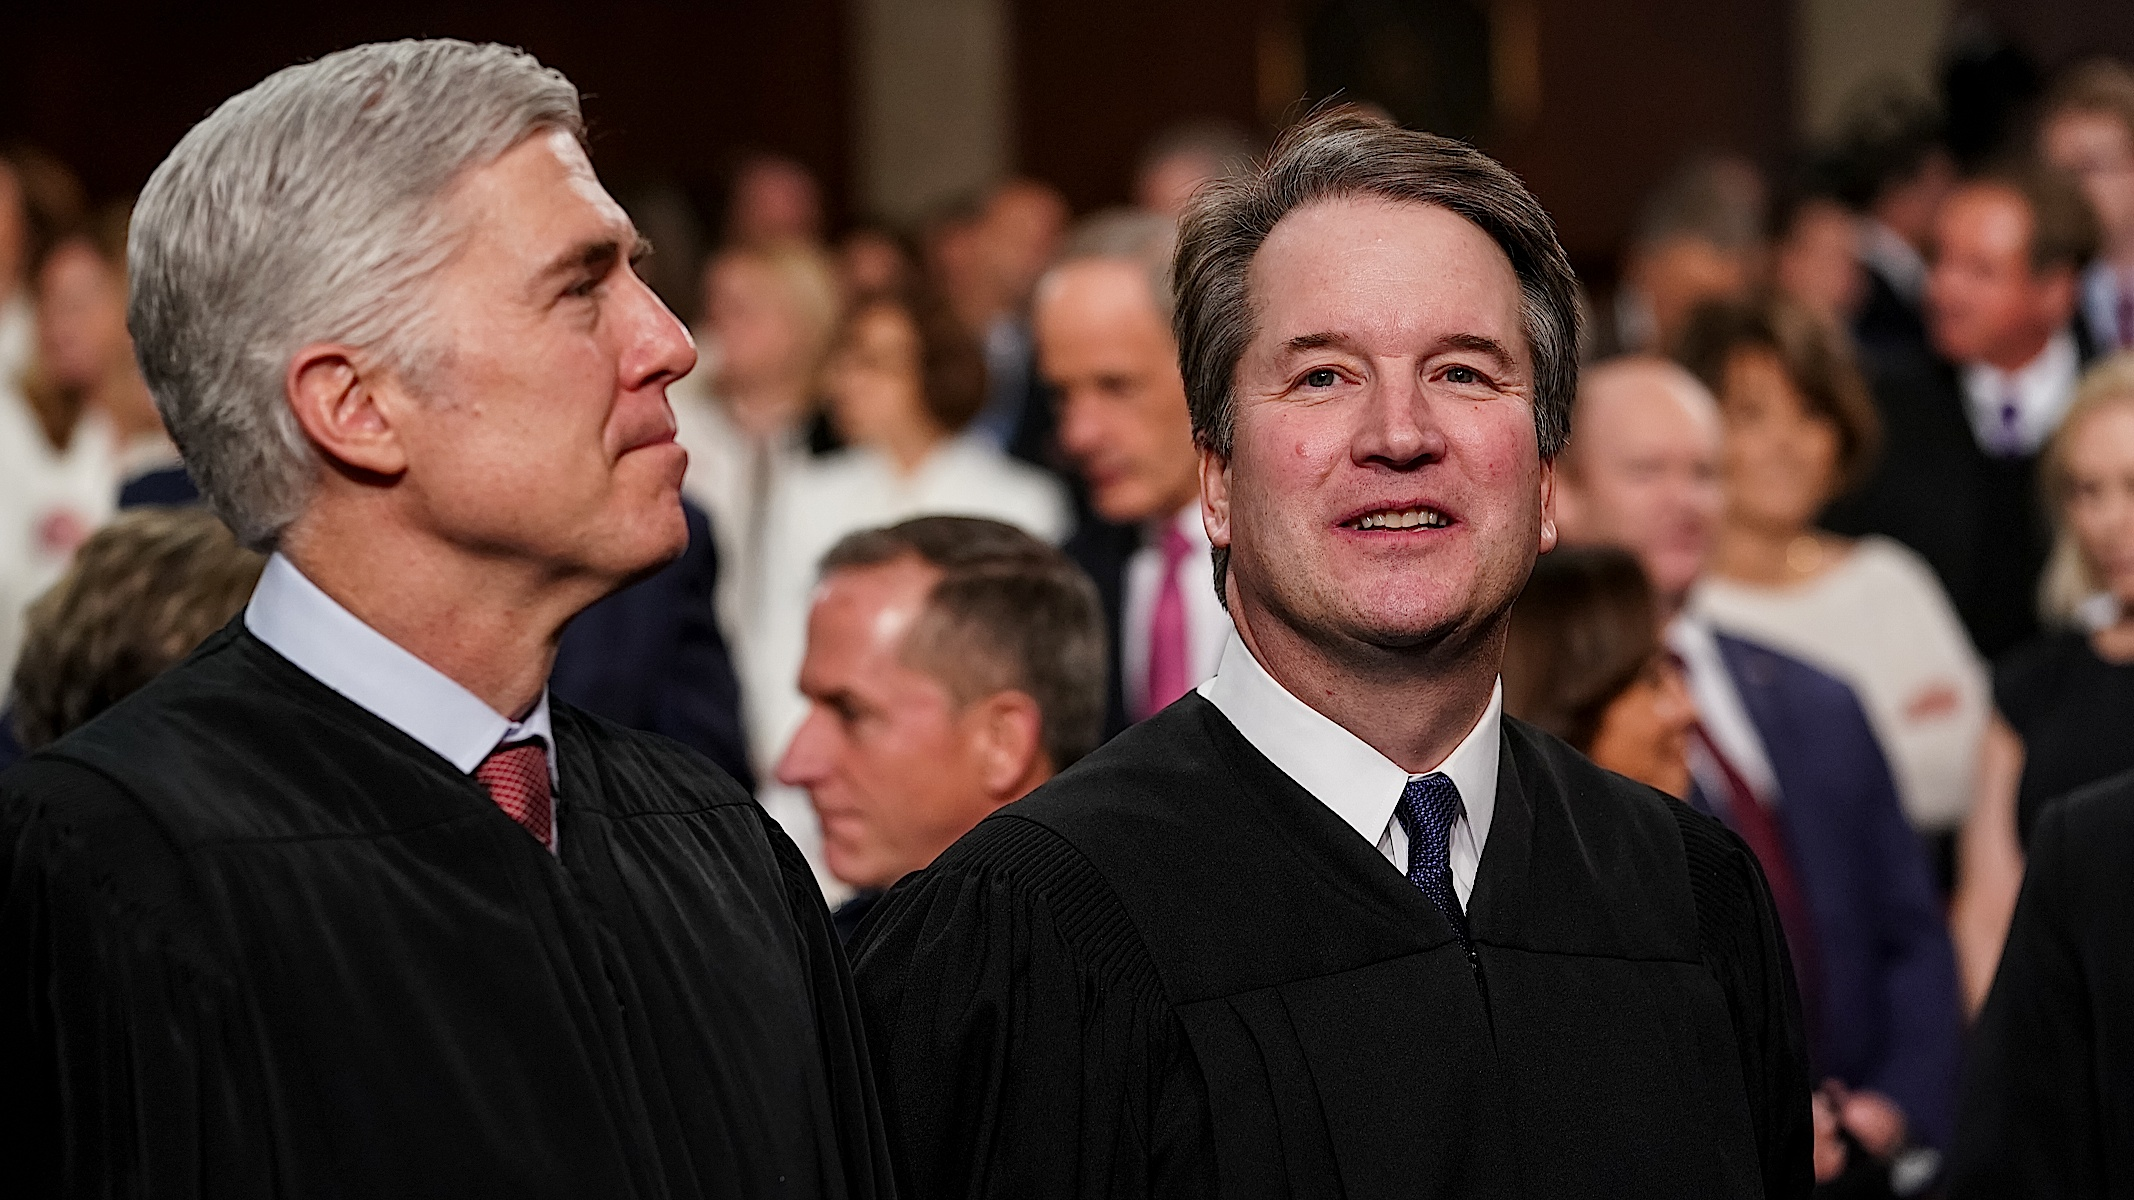 Is the Supreme Court Anything More Than a Partisan Joke? With Two Cases, We're About to Find Out